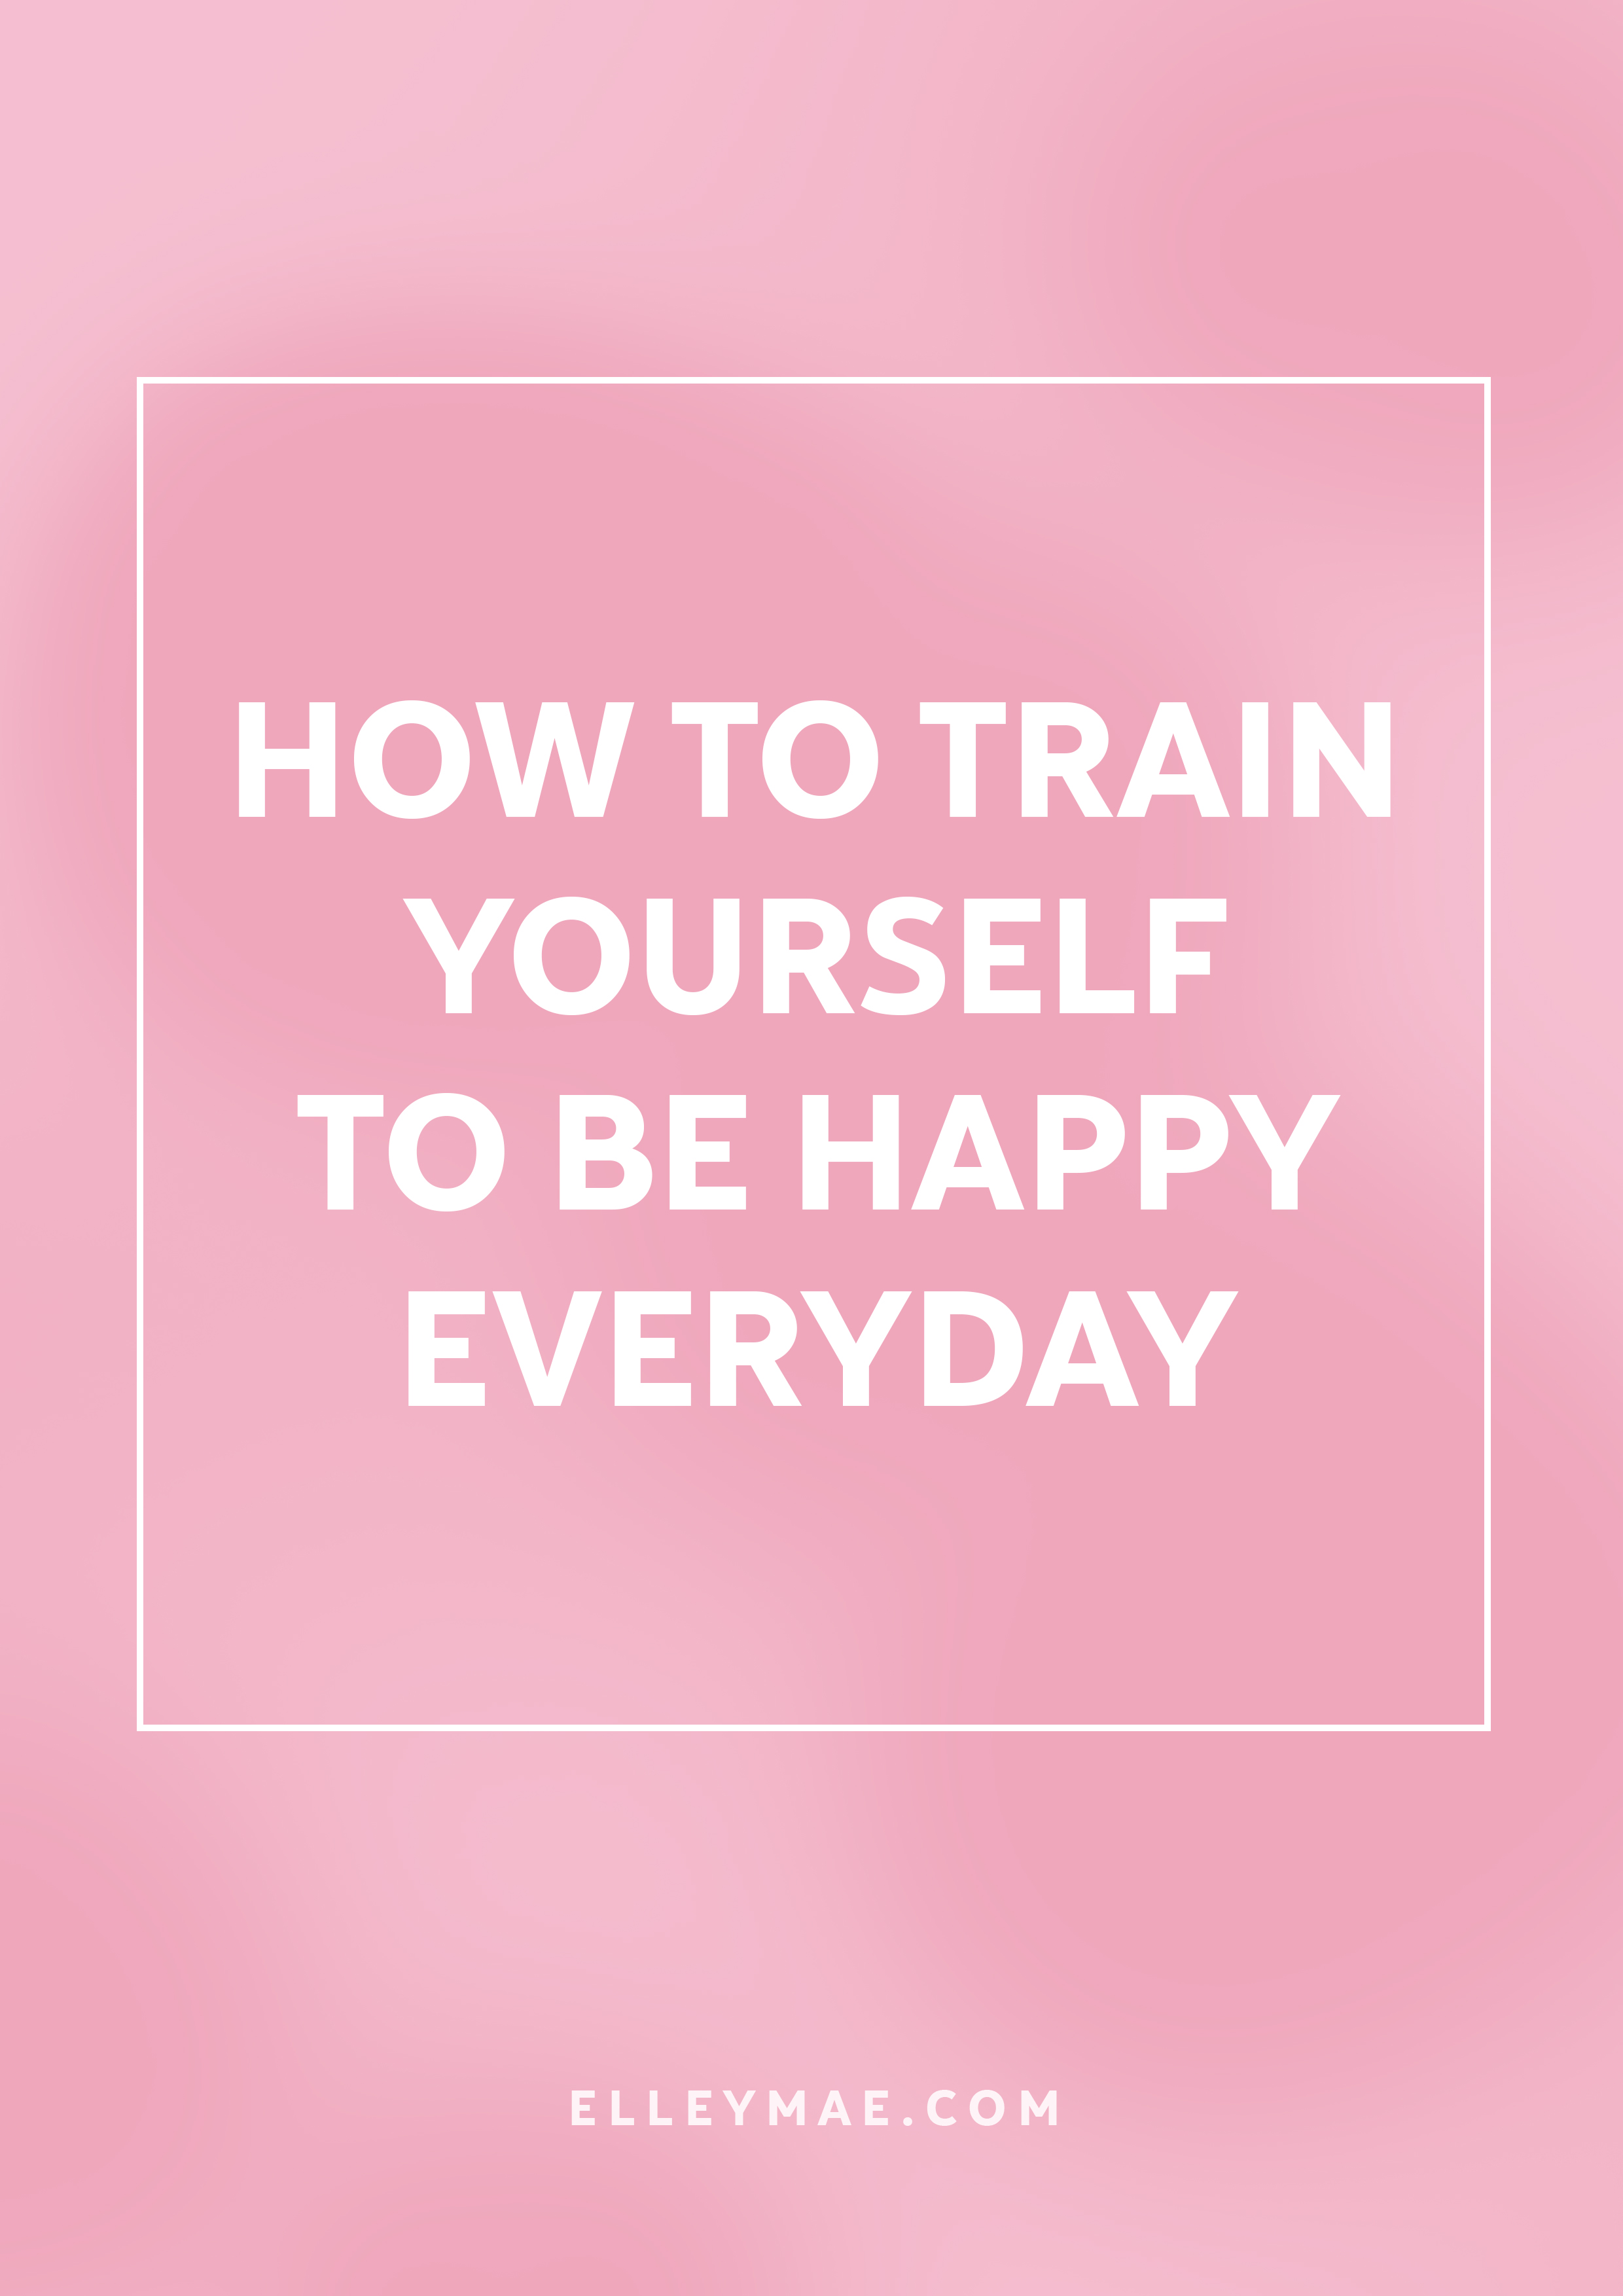 How I Trained Myself To Be Happy | No one can be happy 24/7, it's just impossible. Training your brain to be happy takes time, but with one simple daily task, I've gone from letting others determine my happiness to ME being ME. Being strong, achieving goals & dedicating all of my time to doing the things I love | Happiness is key | ElleyMae.com